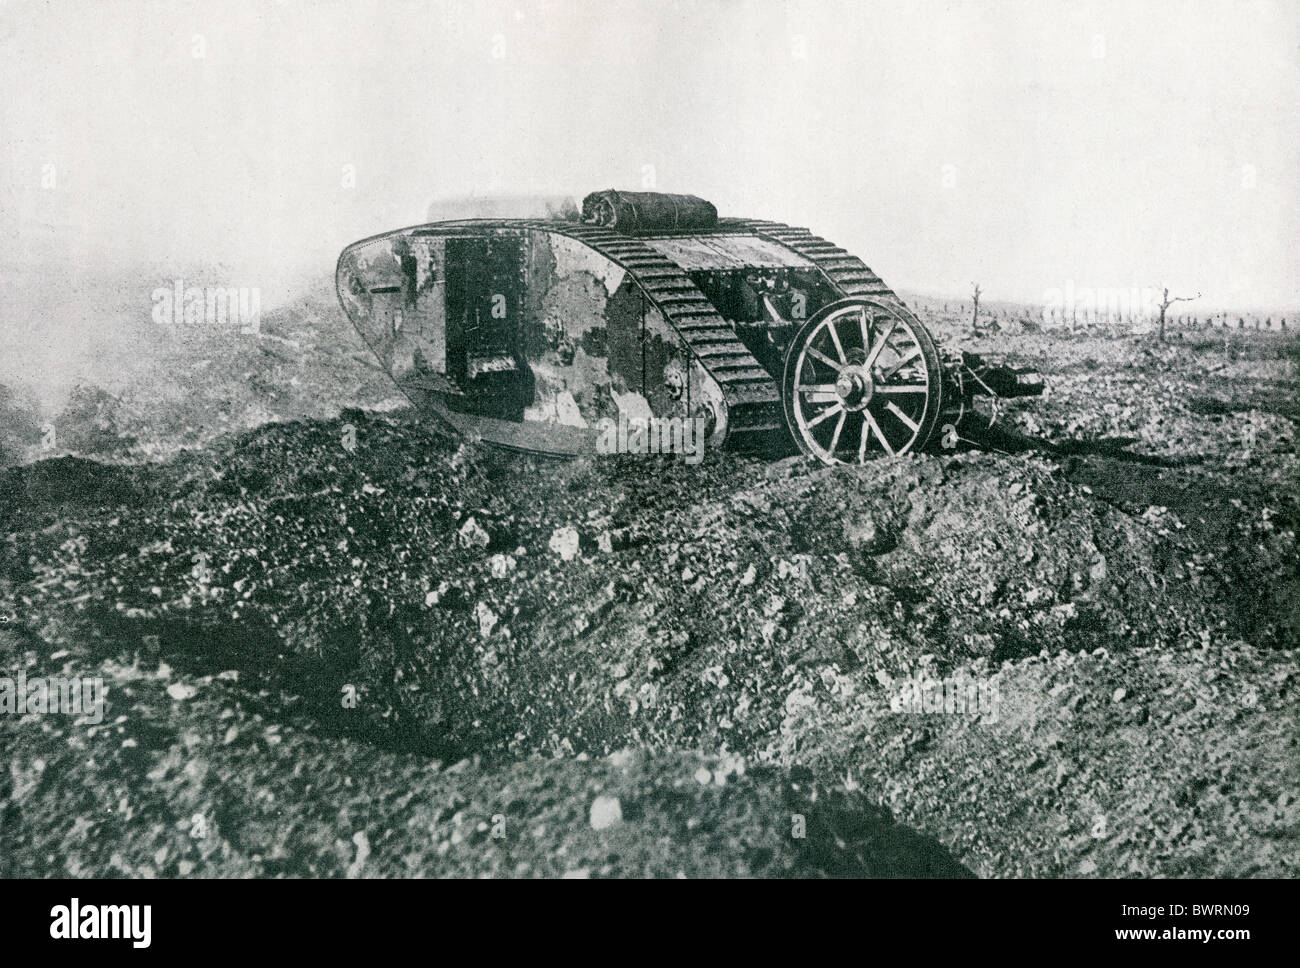 A British tank in action on the Western Front during the First World War. - Stock Image